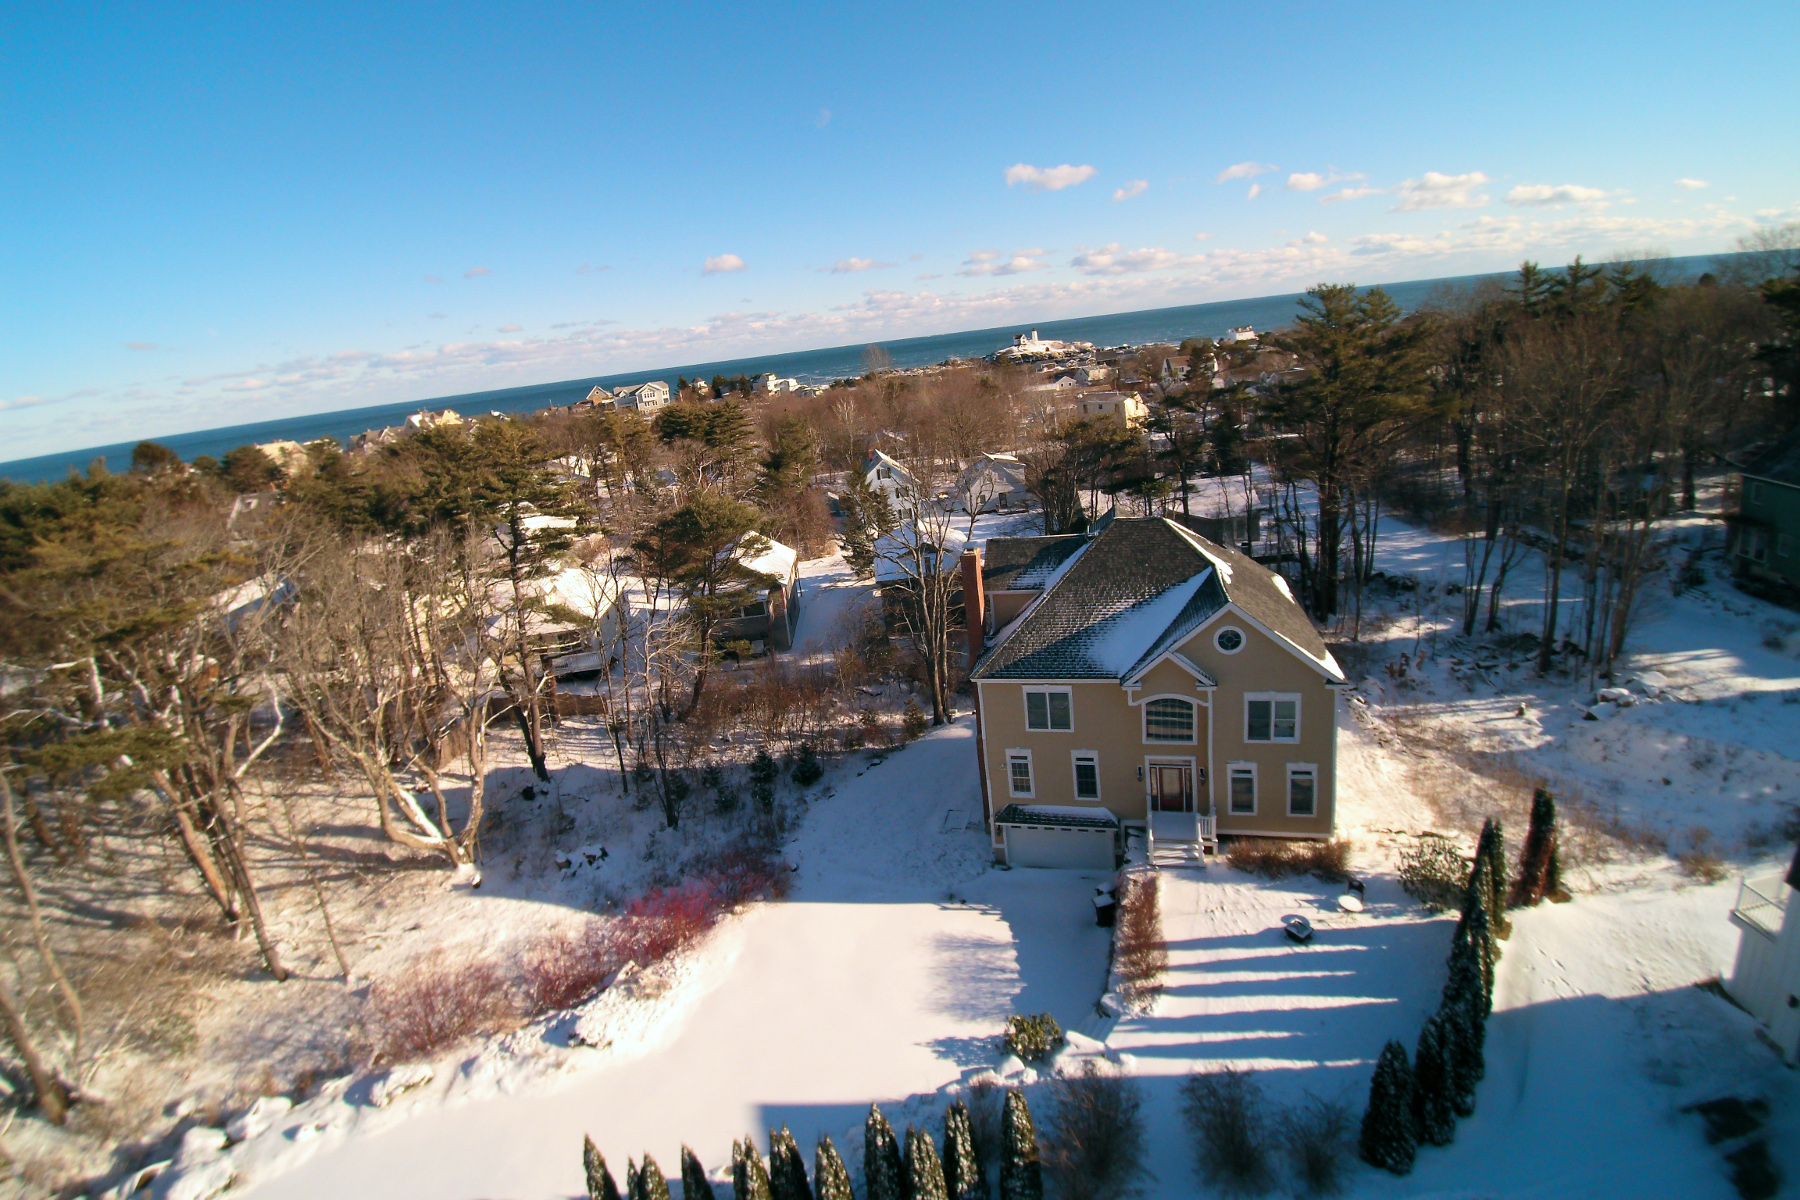 Single Family Home for Sale at Grand Nubble Residence with 1 Bedroom Apartment 8 Harrison Avenue York, Maine, 03909 United States